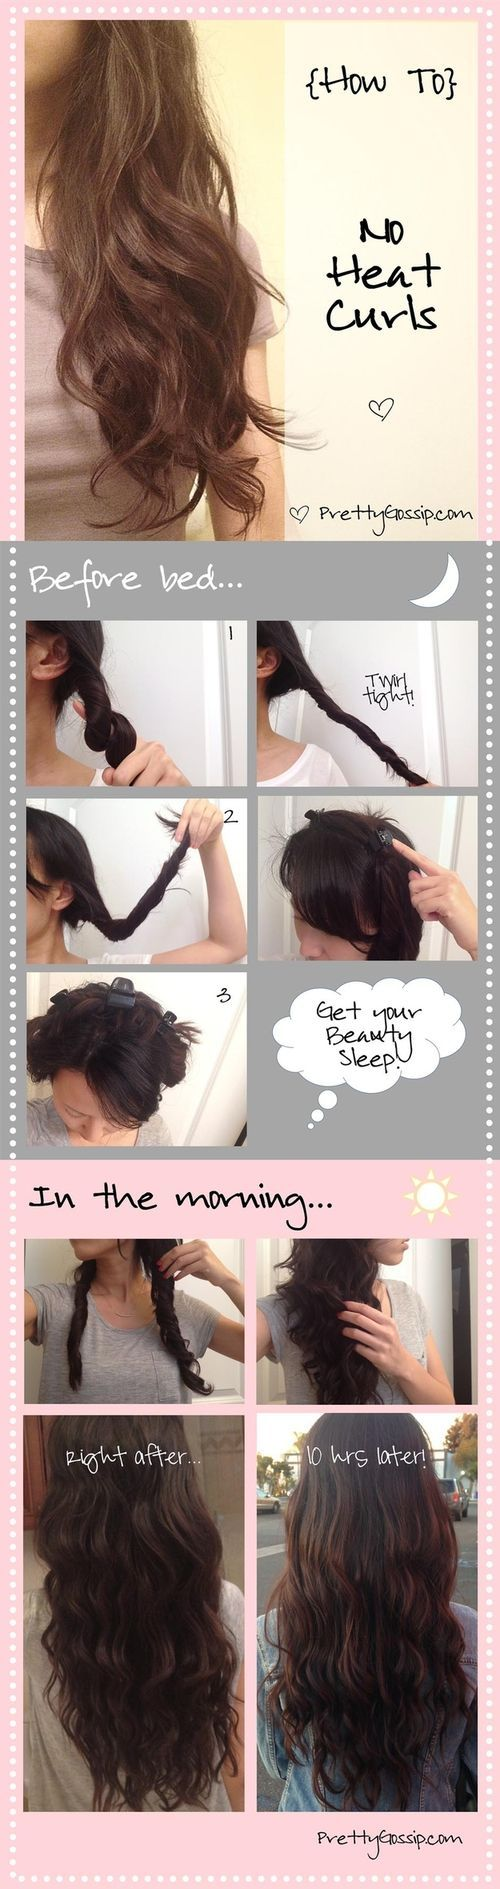 #DIY No Heat Curls Hairstyle Do It Yourself Fashion Tips | DIY Fashion Projects